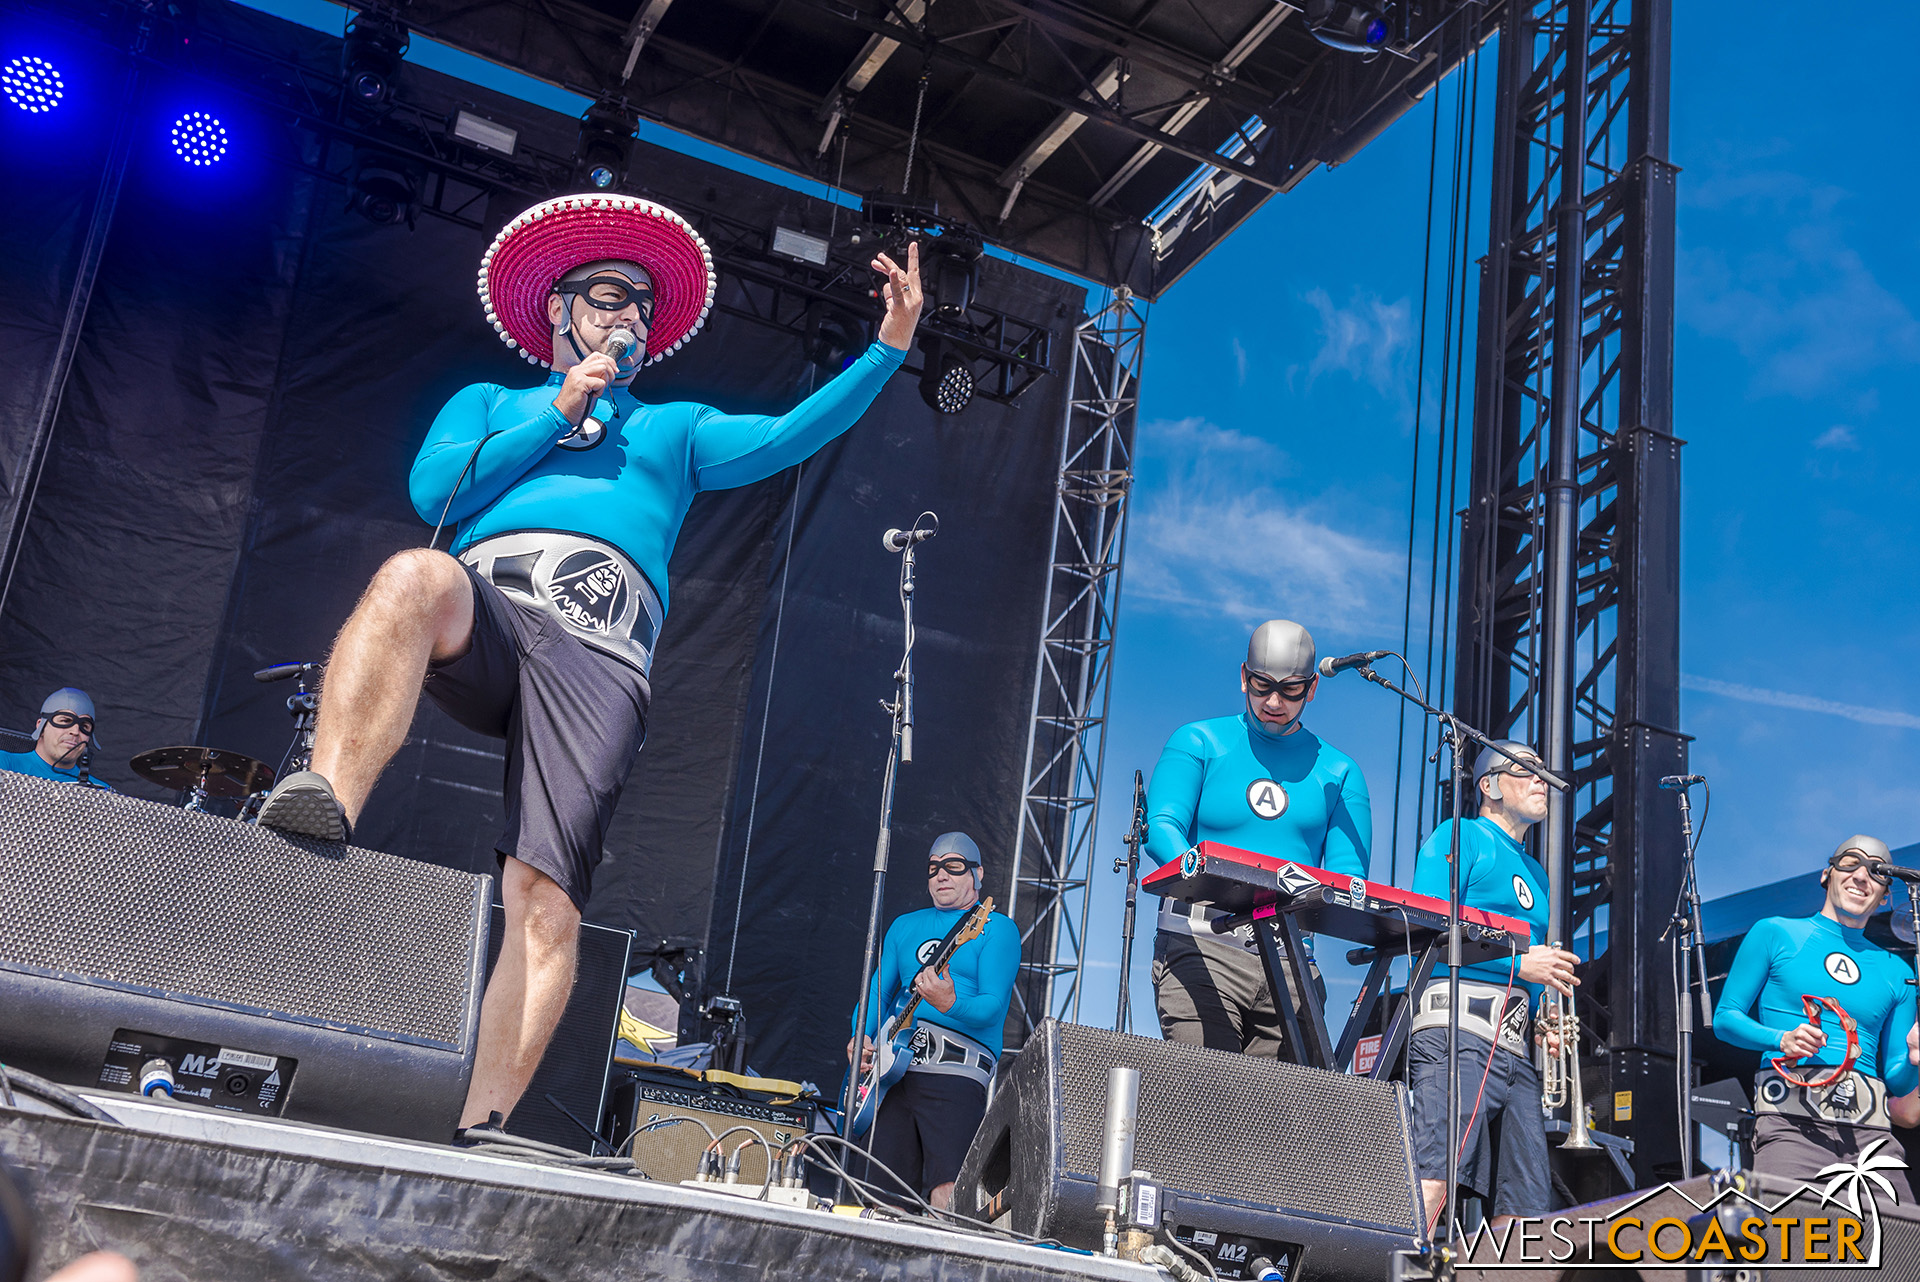 Time to get silly and fun with the Aquabats!